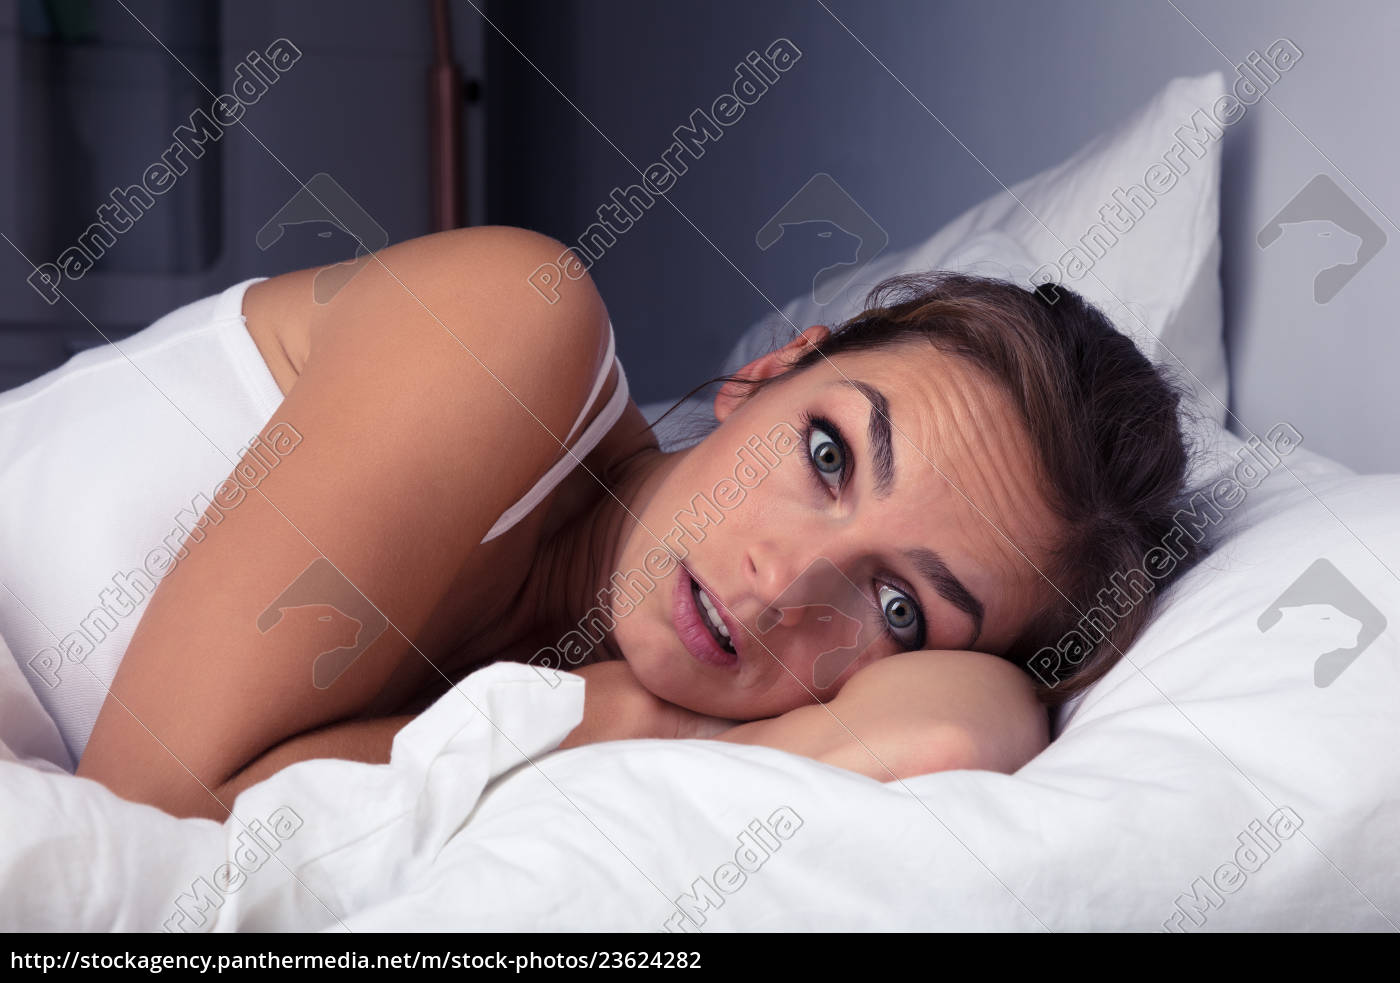 woman, pulling, bed, sheet, over, self - 23624282